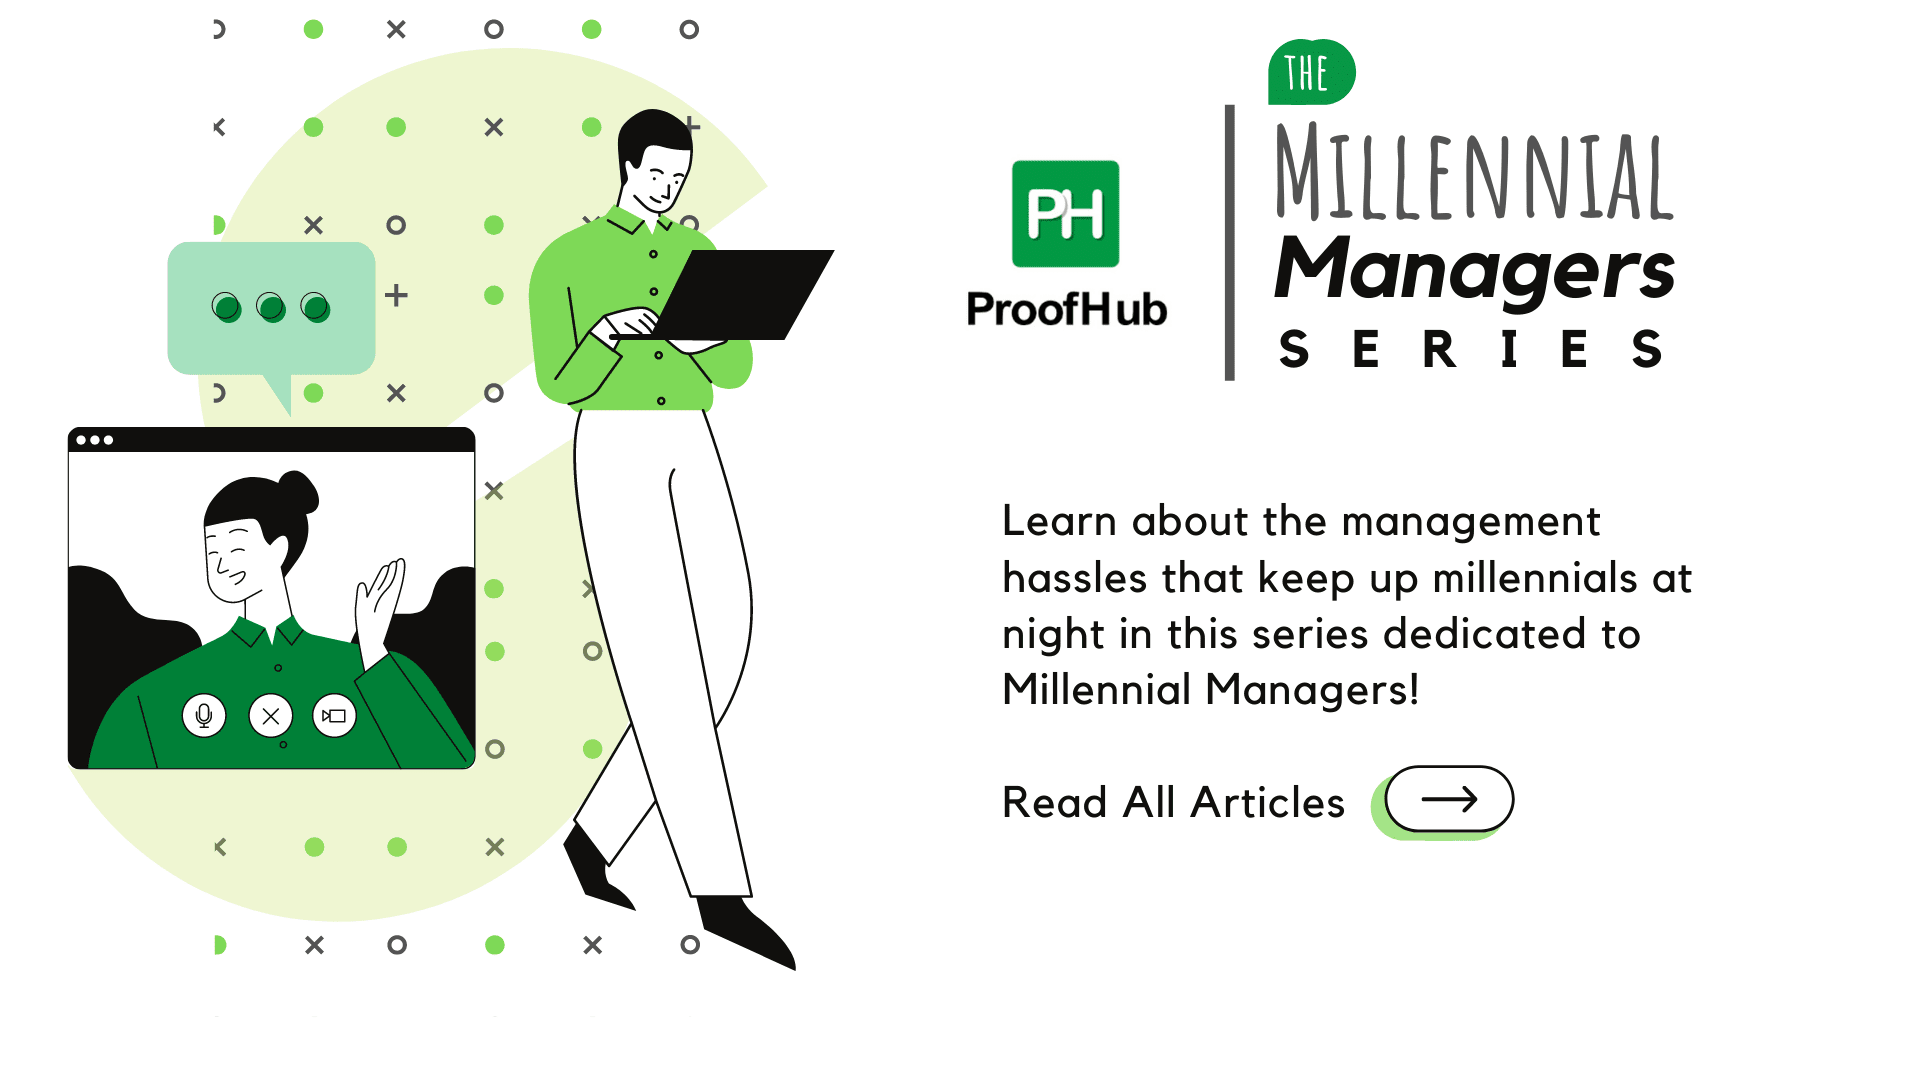 The Millennial Manager Series